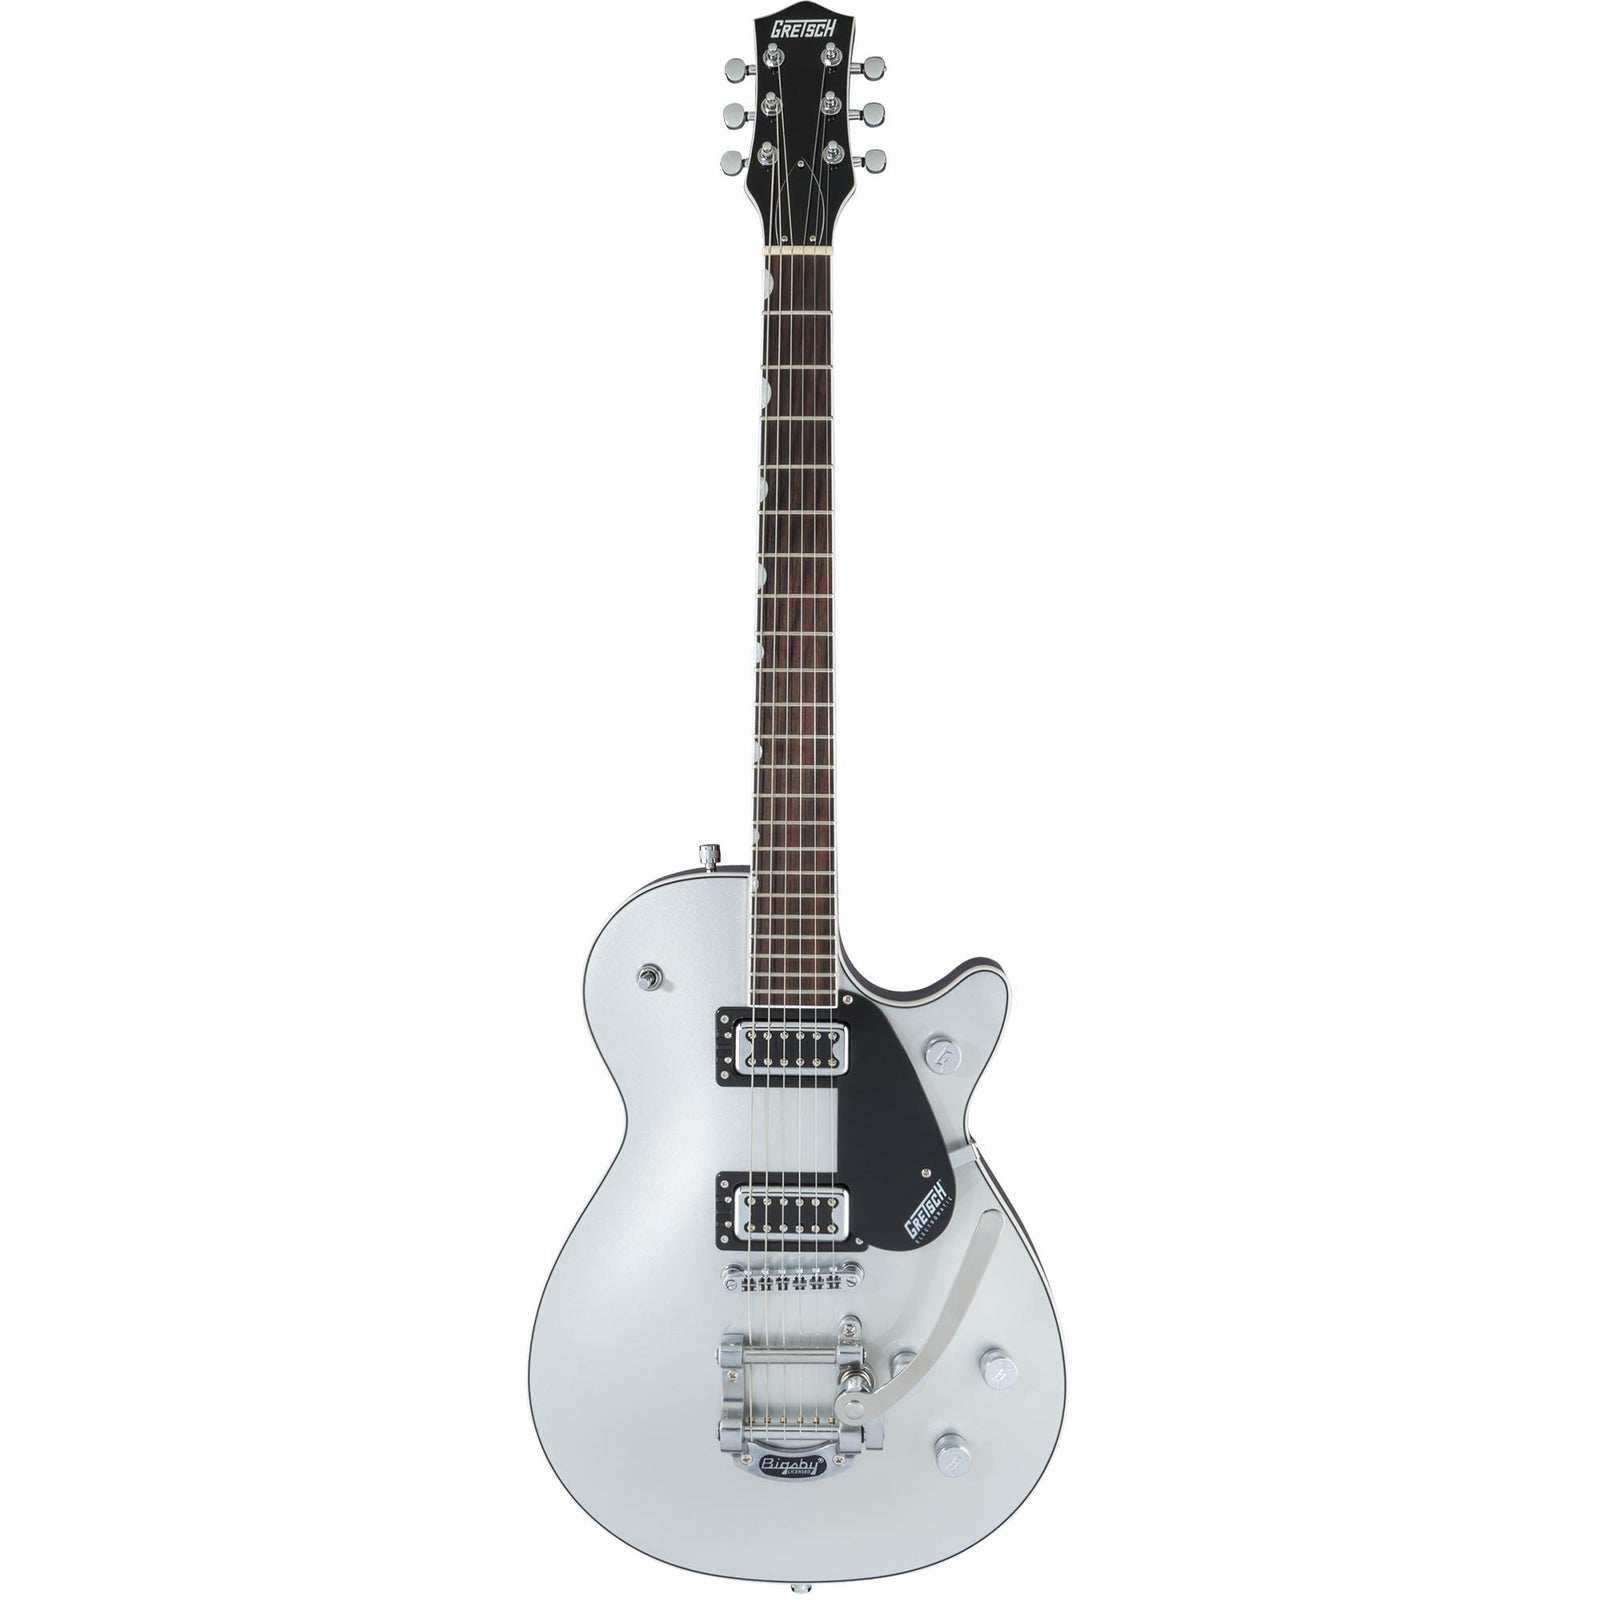 Gretsch G5230T Electromatic Jet FT - Airline Silver